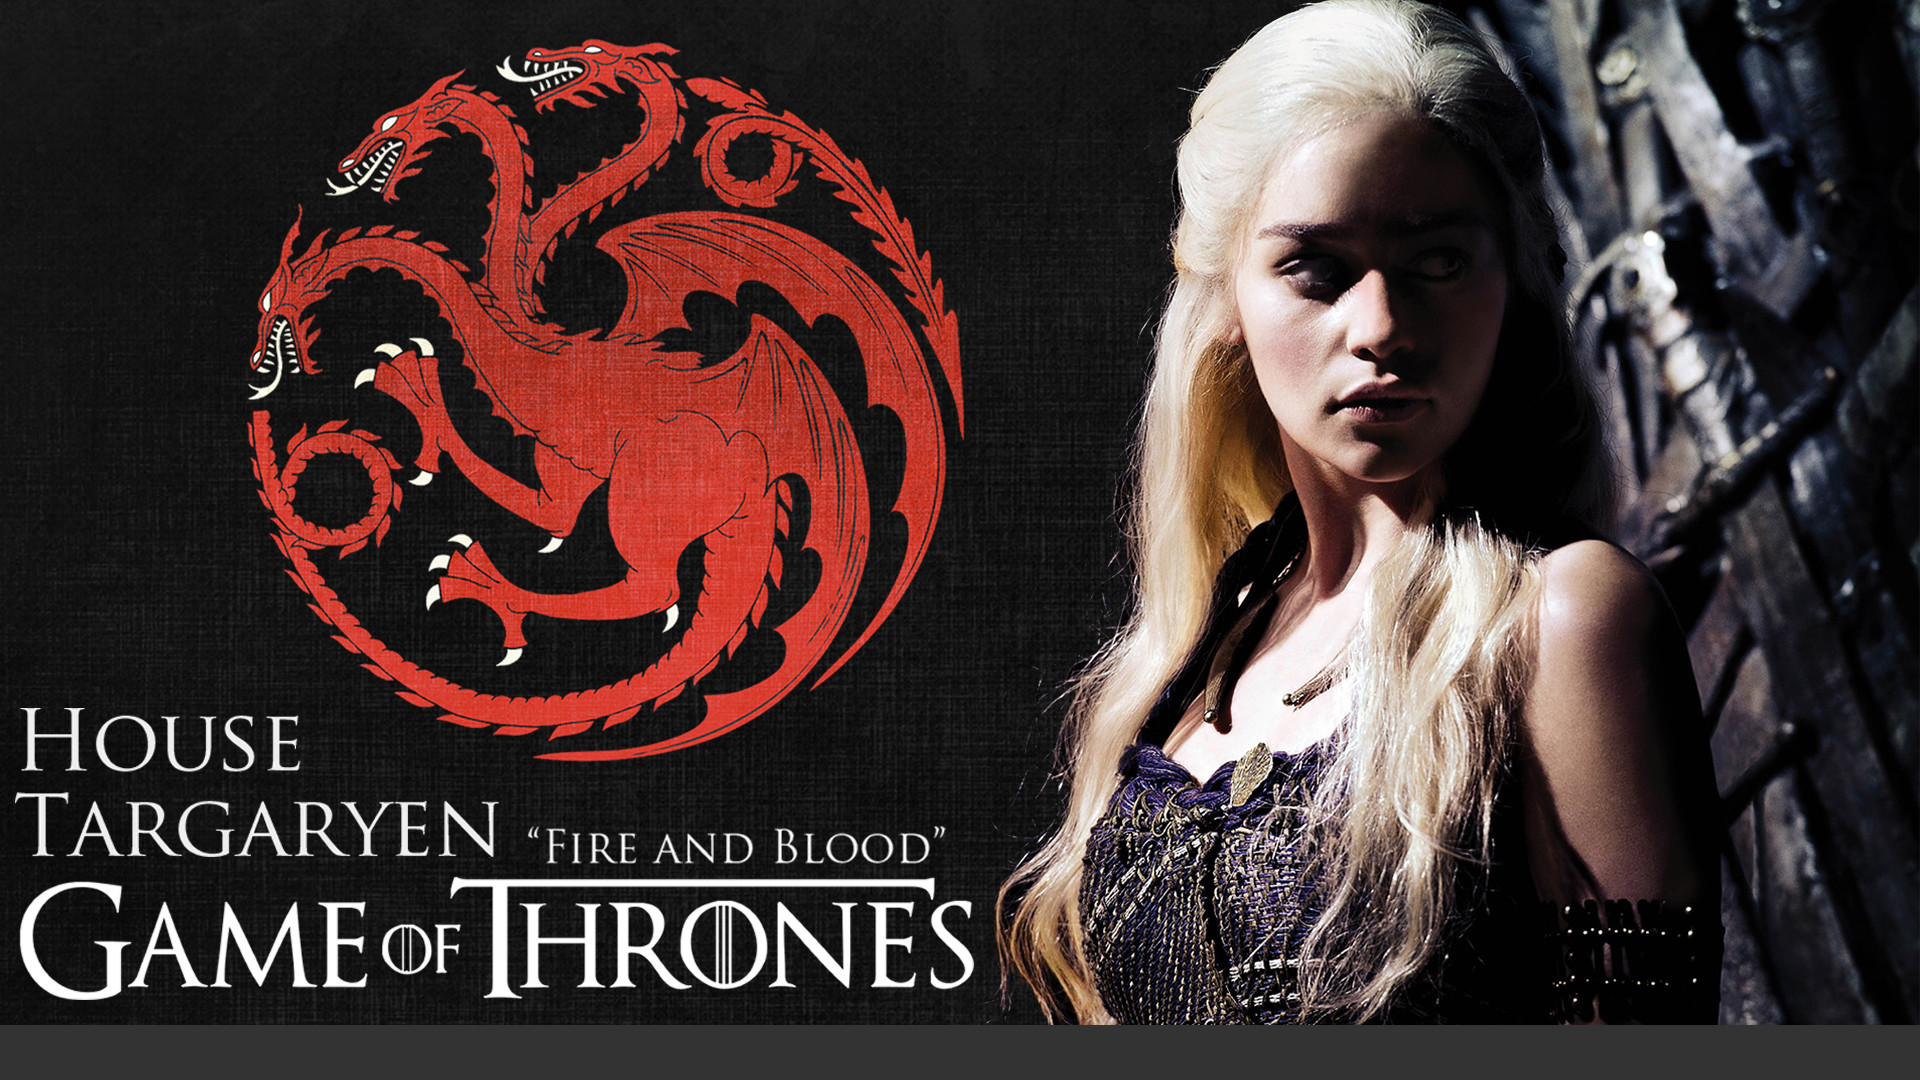 1920x1080 ... Game of Thrones: House Targaryen Wallpaper (HD) by davef30